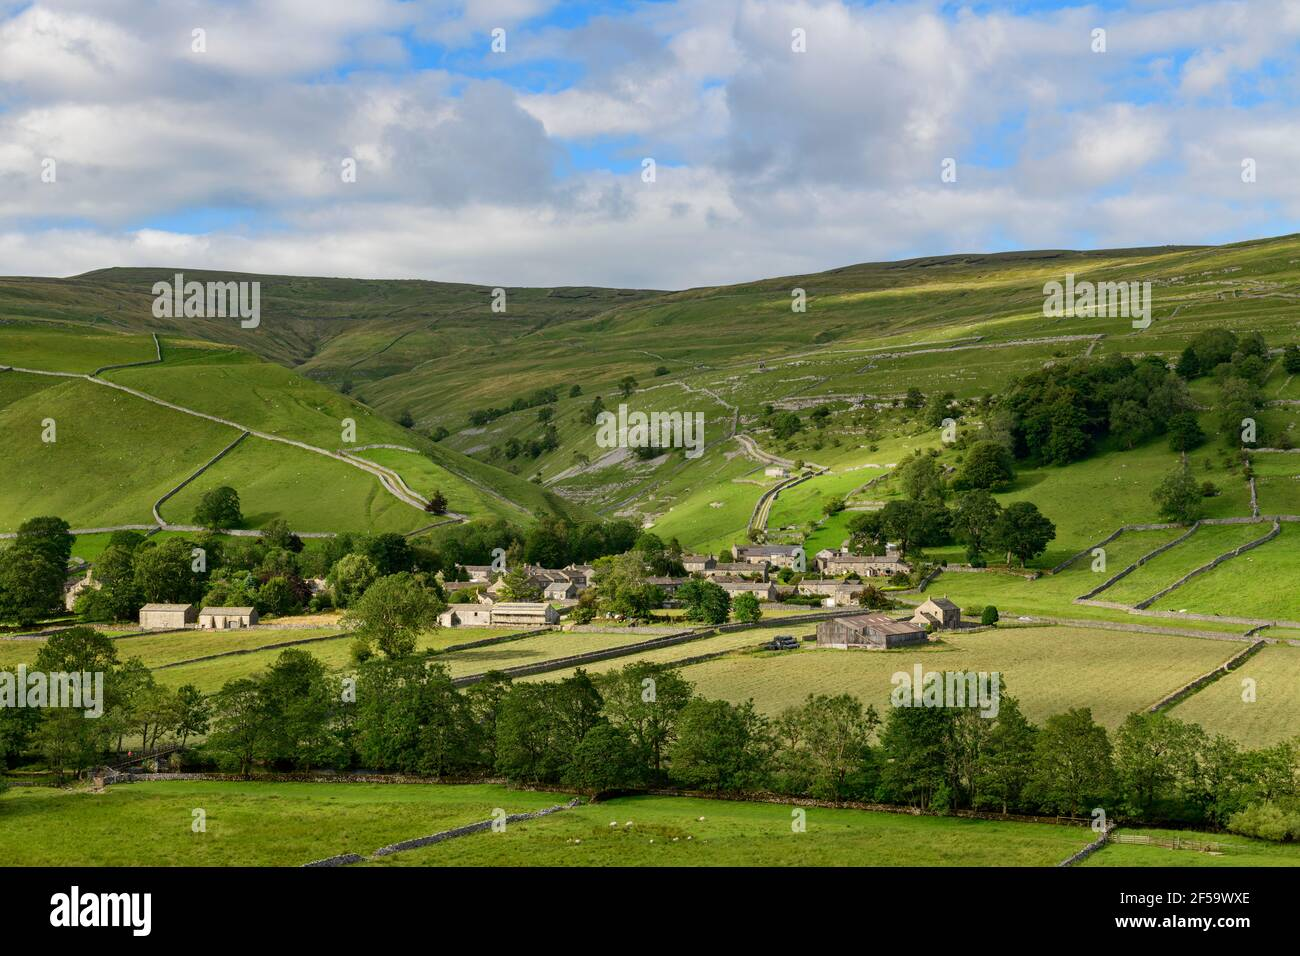 Picturesque Dales village (stone houses) nestling in sunlit valley by fields, hills, hillsides & steep-sided gorge - Starbotton, Yorkshire England UK. Stock Photo